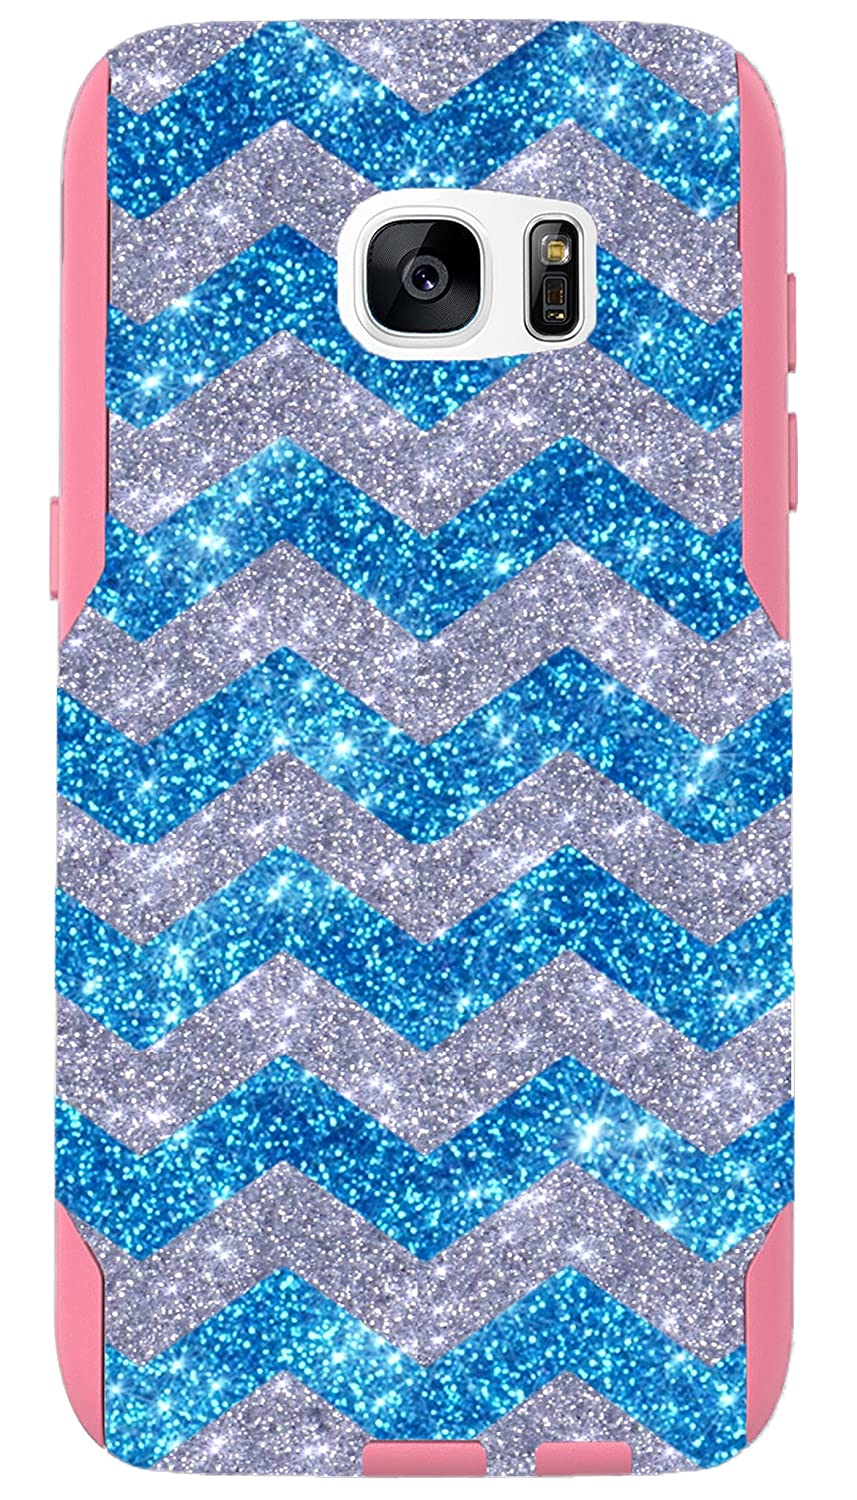 Custom Glitter Case for Galaxy S7 Edge